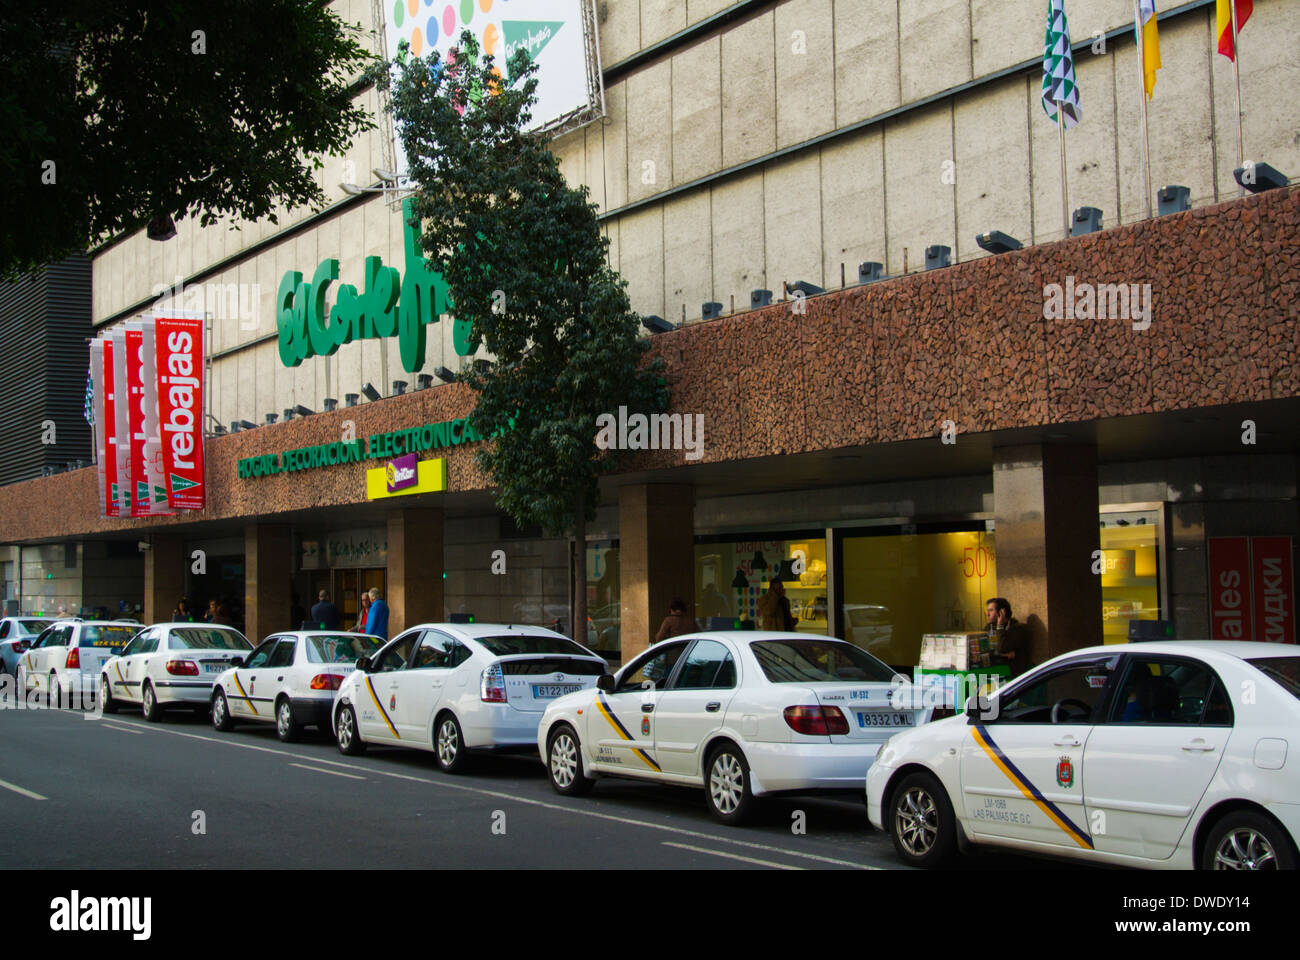 Shopping in canary islands stock photos shopping in canary islands stock images alamy - El corte ingles stores ...